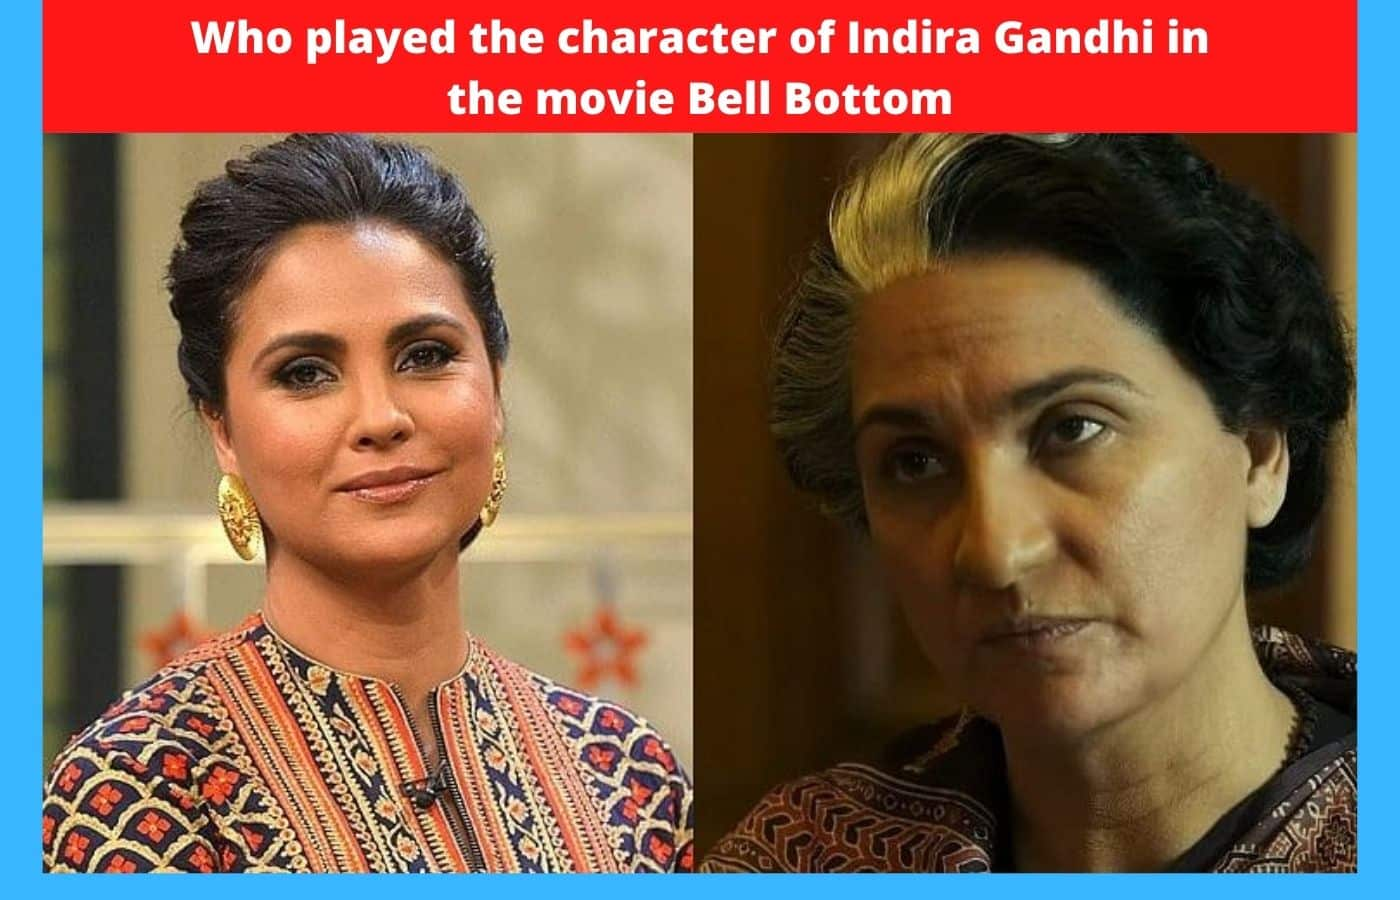 Who played the character of Indira Gandhi in the movie Bell Bottom